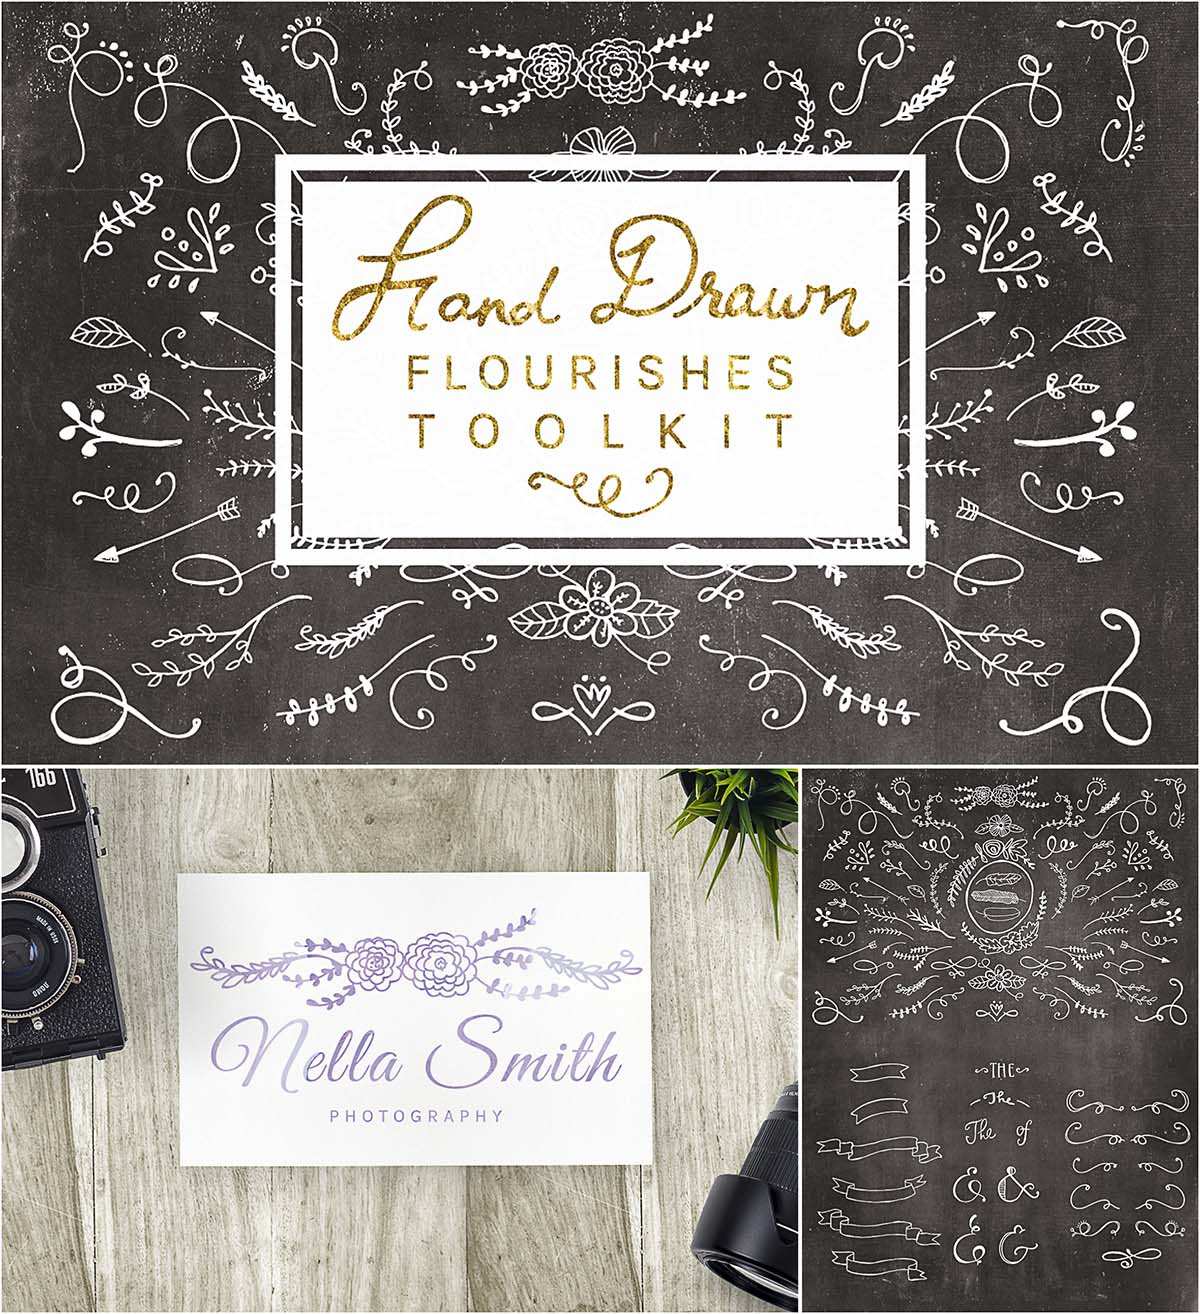 Retro hand drawn flourishes toolkit